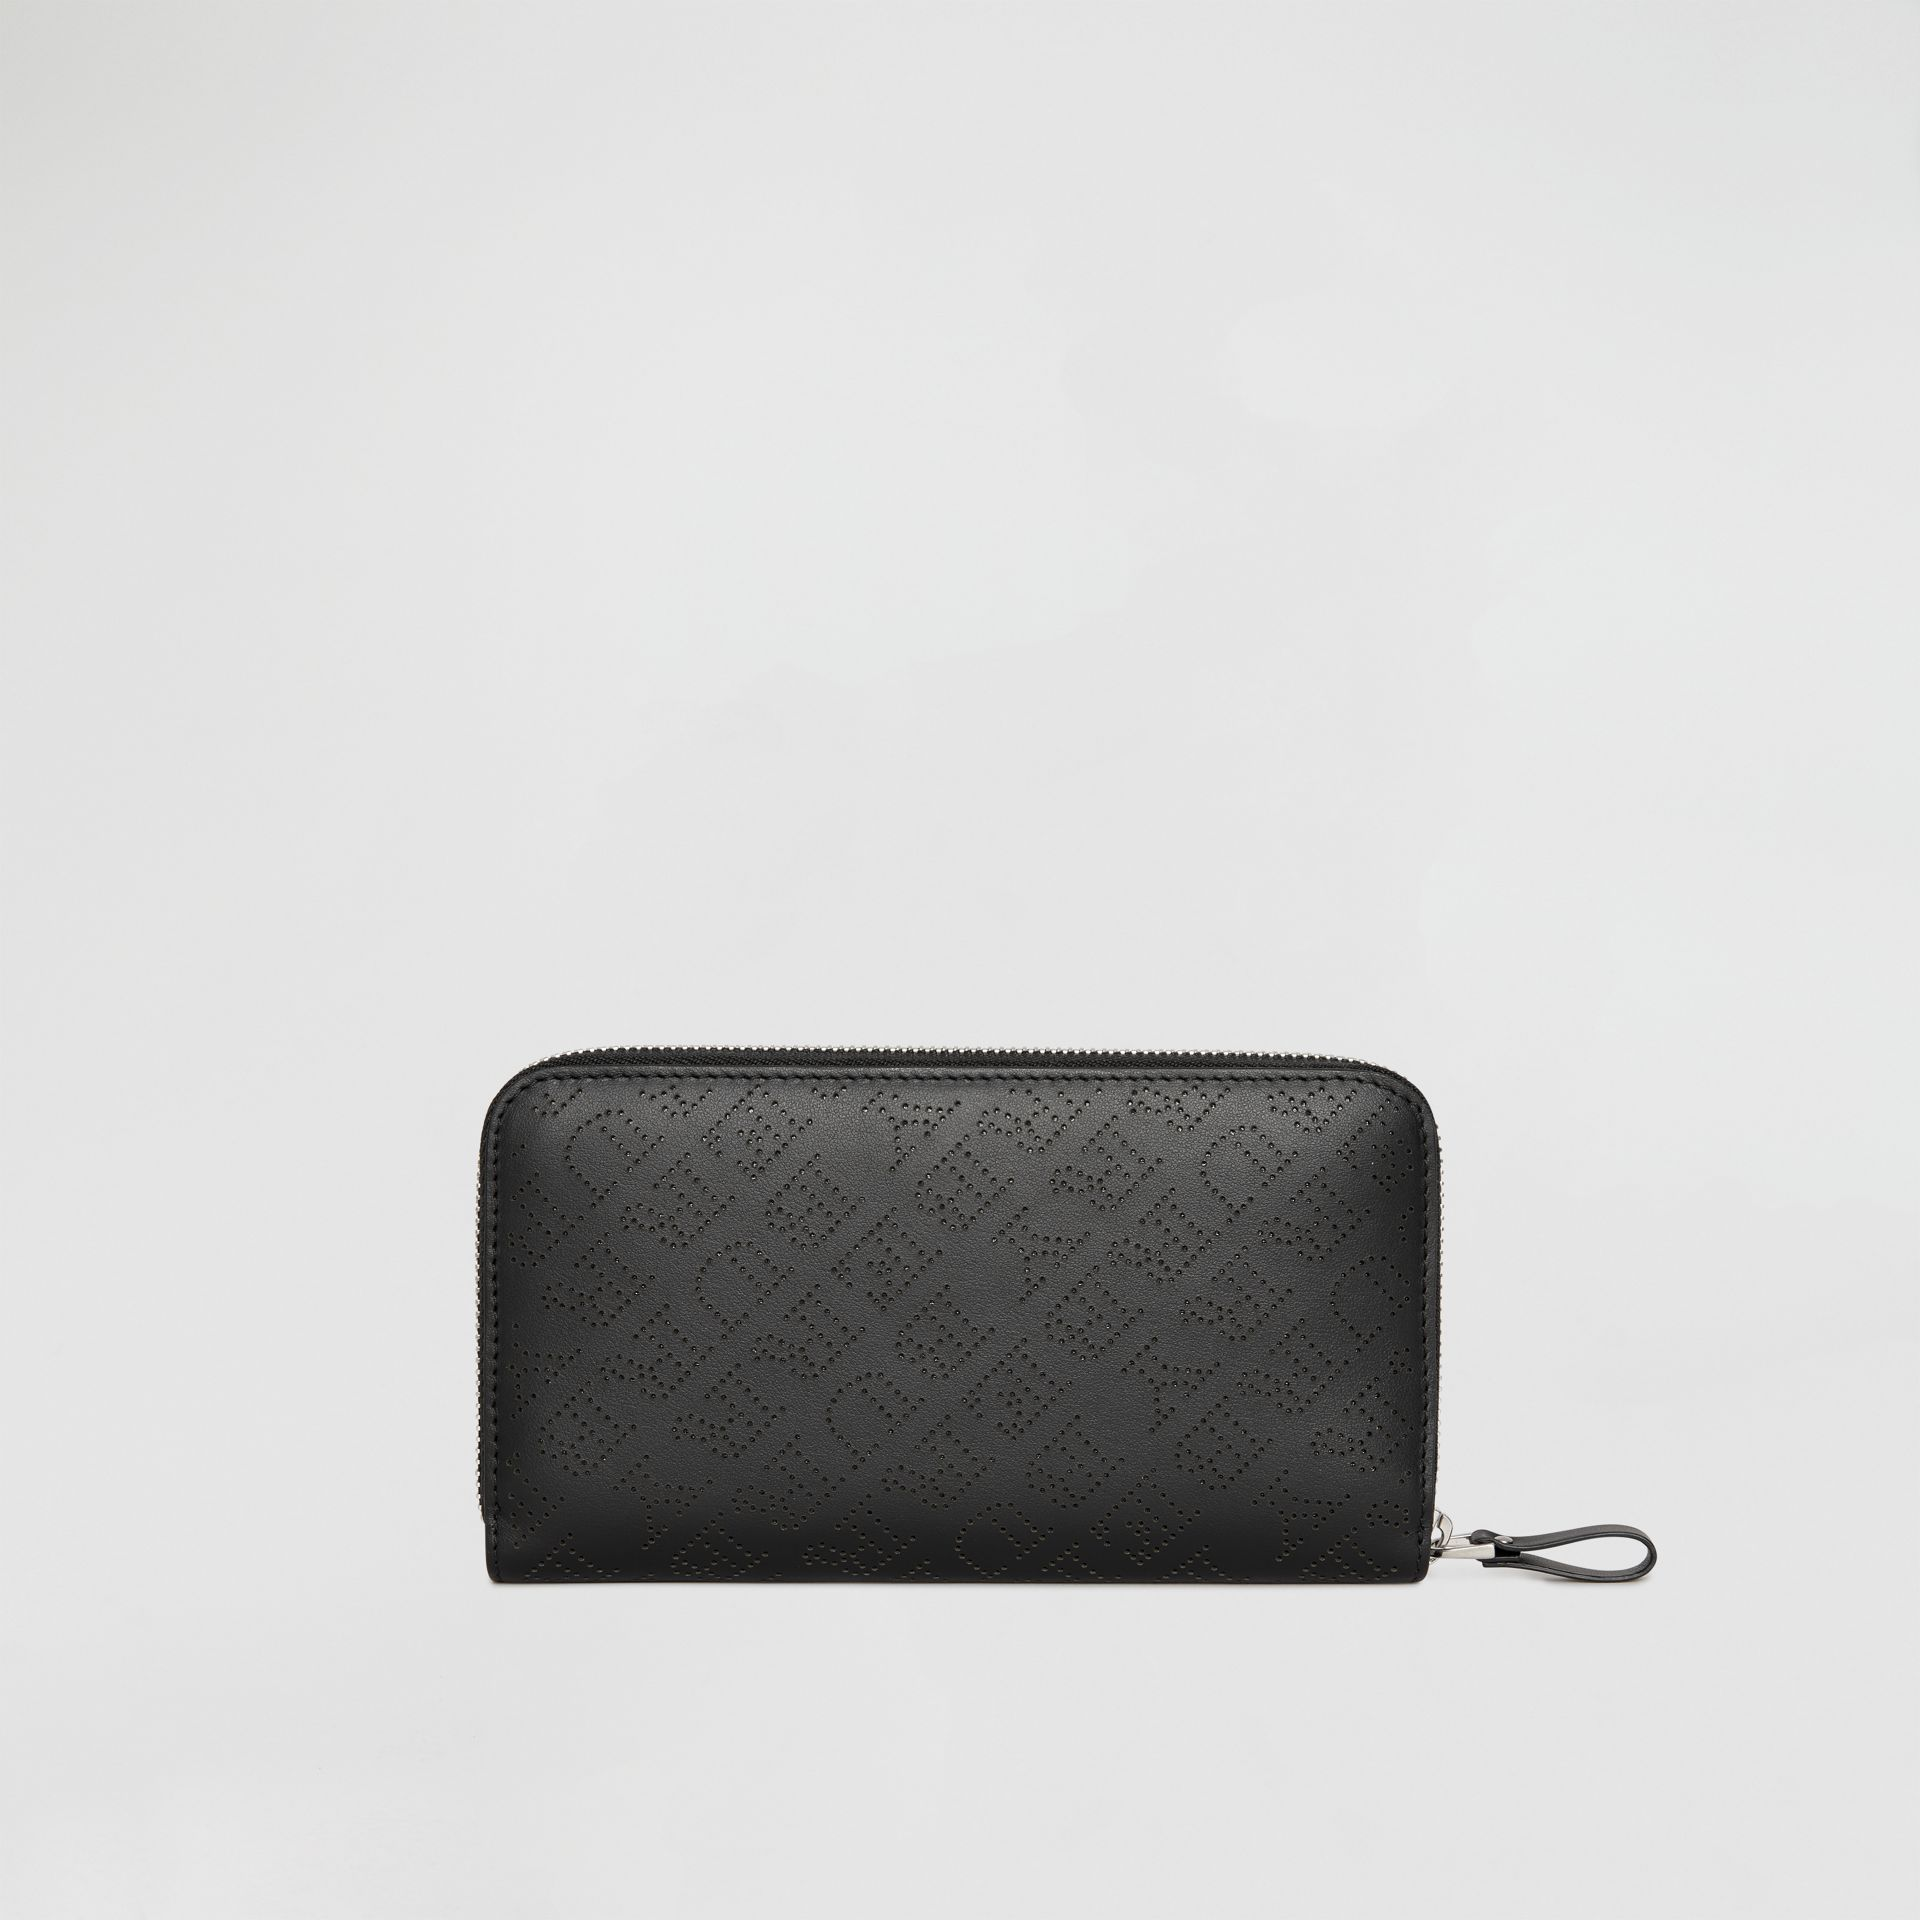 Perforated Leather Ziparound Wallet in Black - Women | Burberry Hong Kong - gallery image 4